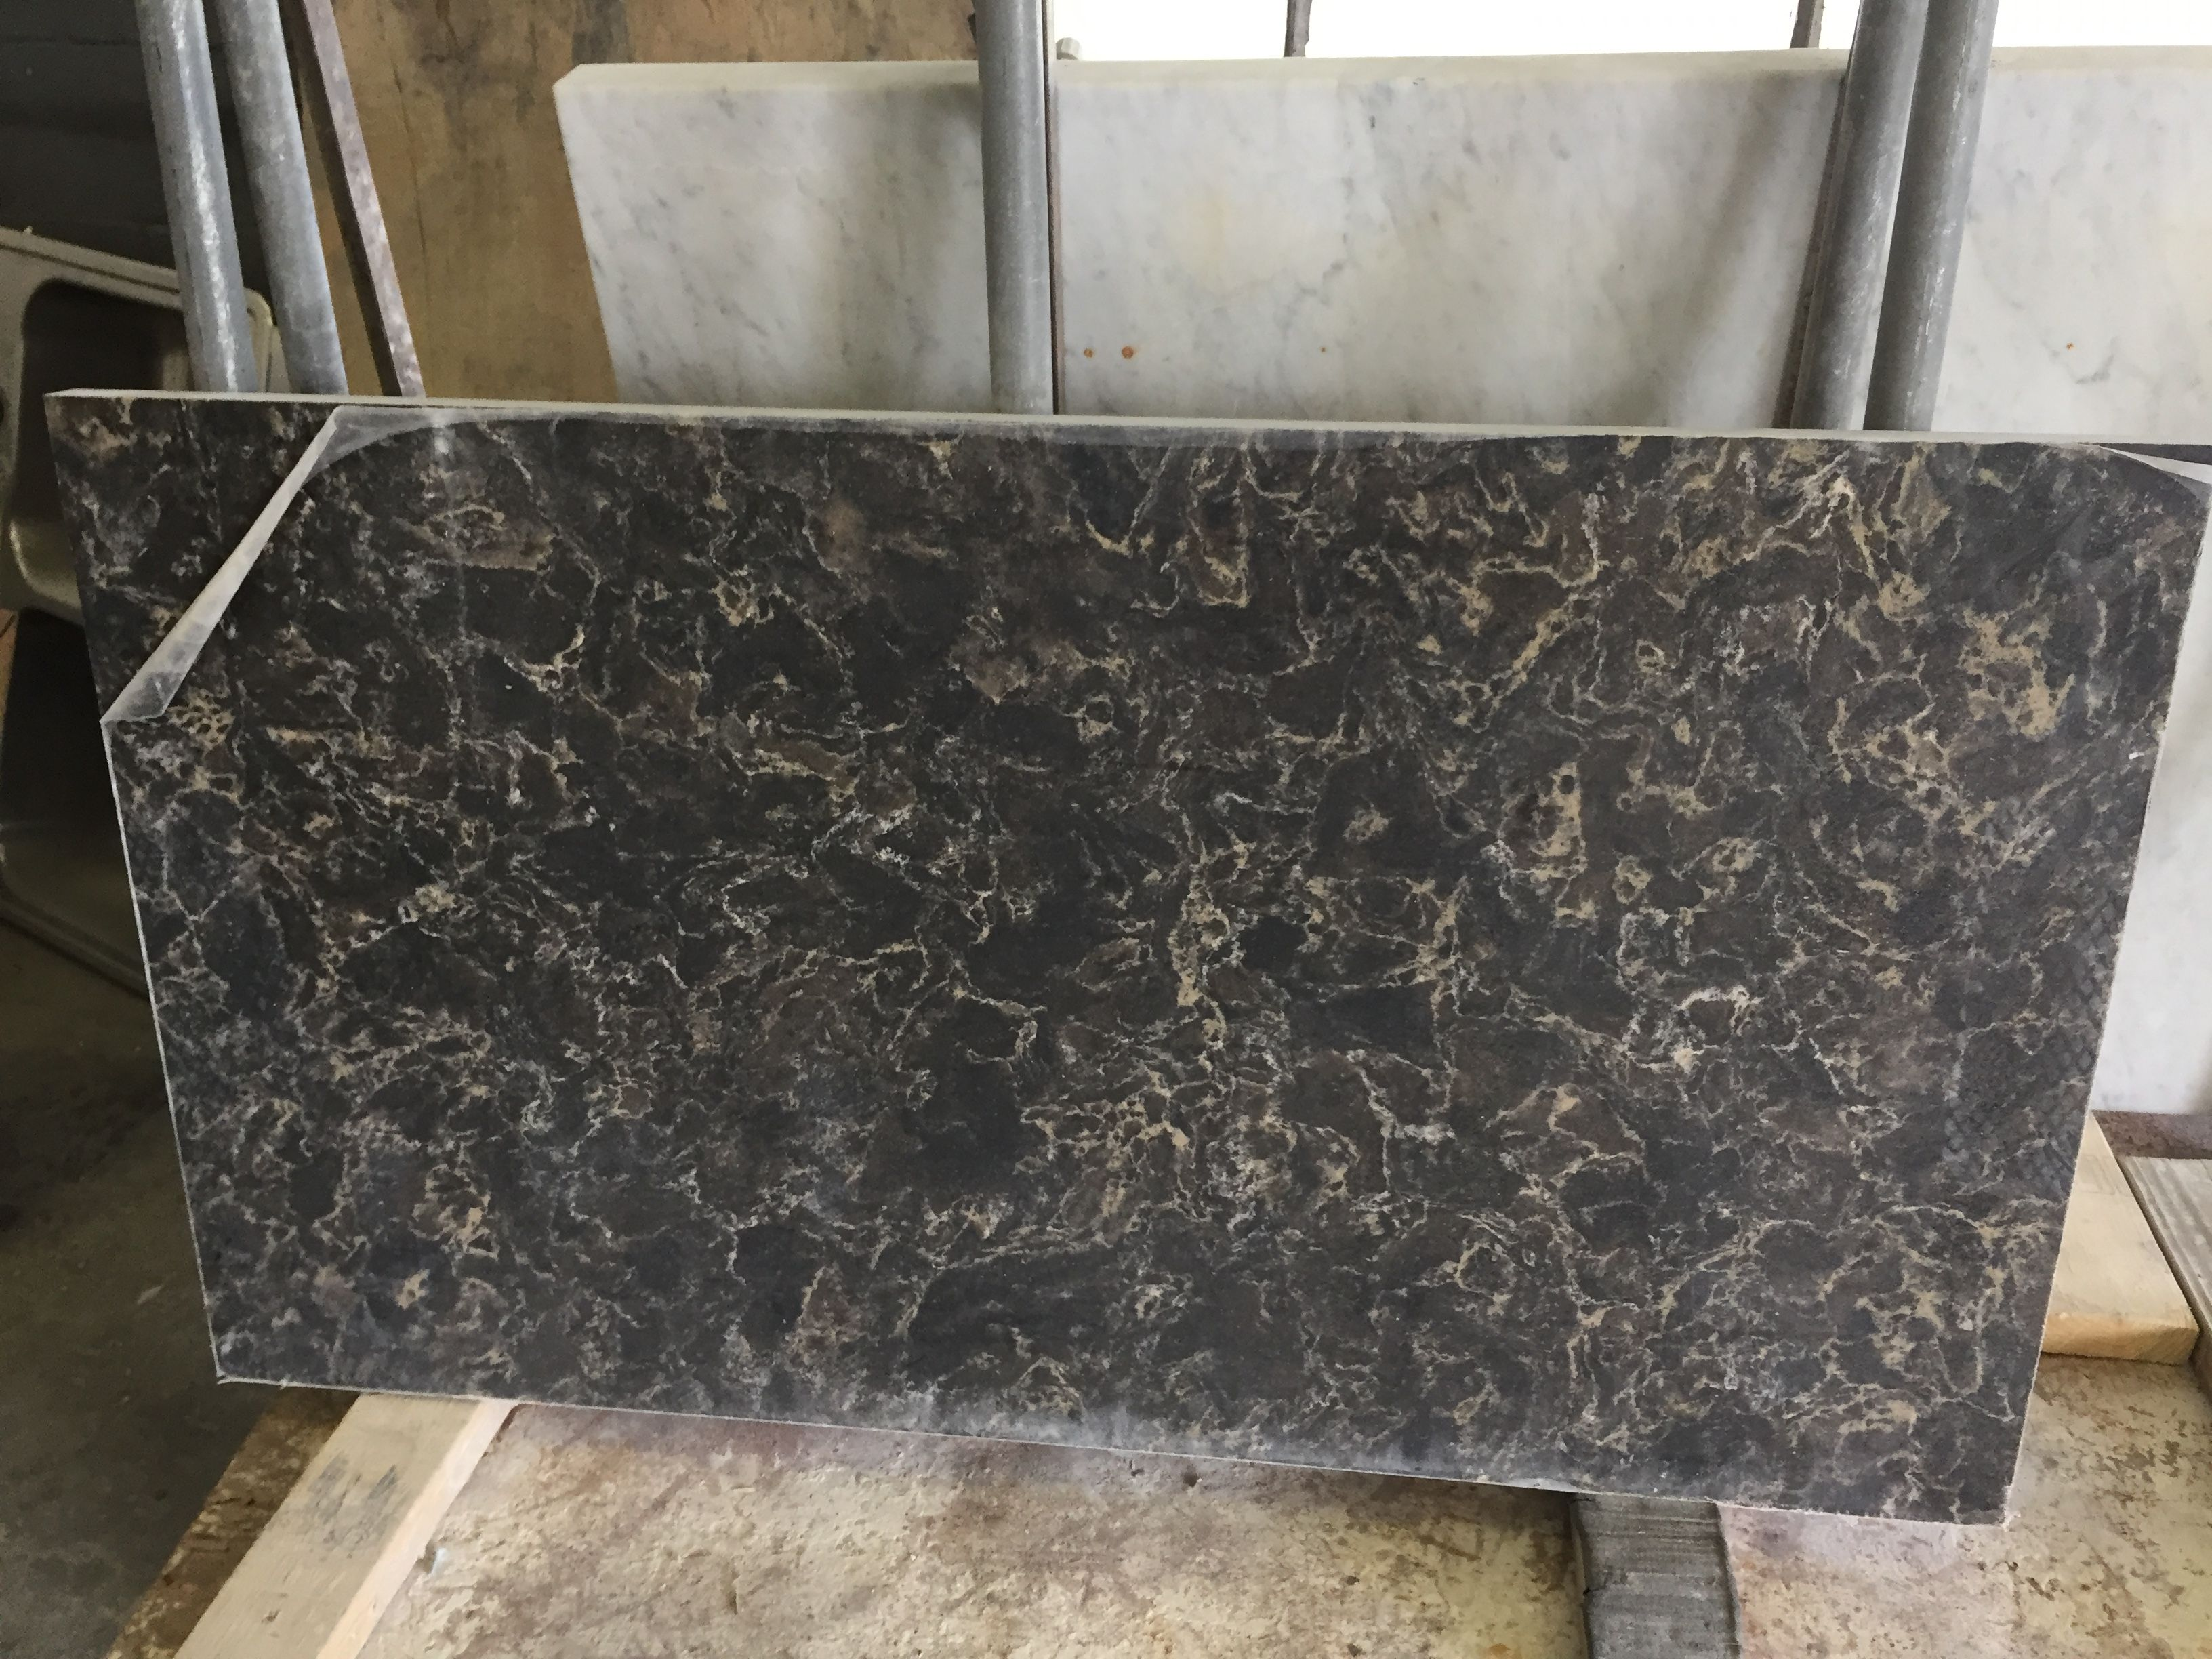 Cambria Quartz Laneshaw Remnant Finder Finding You The Right Stone Remnant For Your Home Cambria Quartz Cambria Granite Remnants